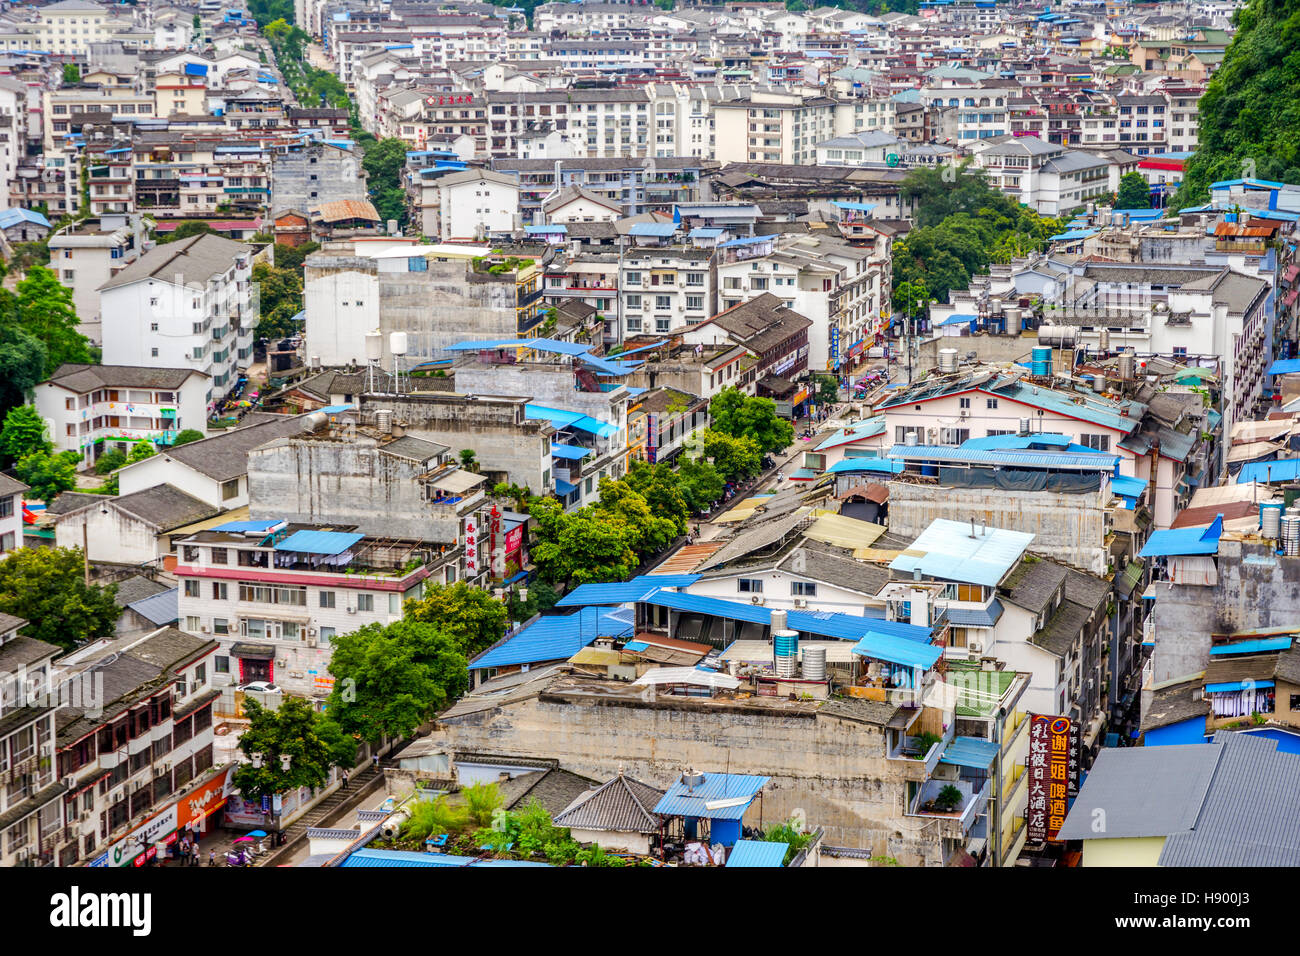 YANGSHUO, CHINA - JUNE 12: View over rooftops and buildings of Yangshuo city, Guilin prefecture. June 2016 - Stock Image